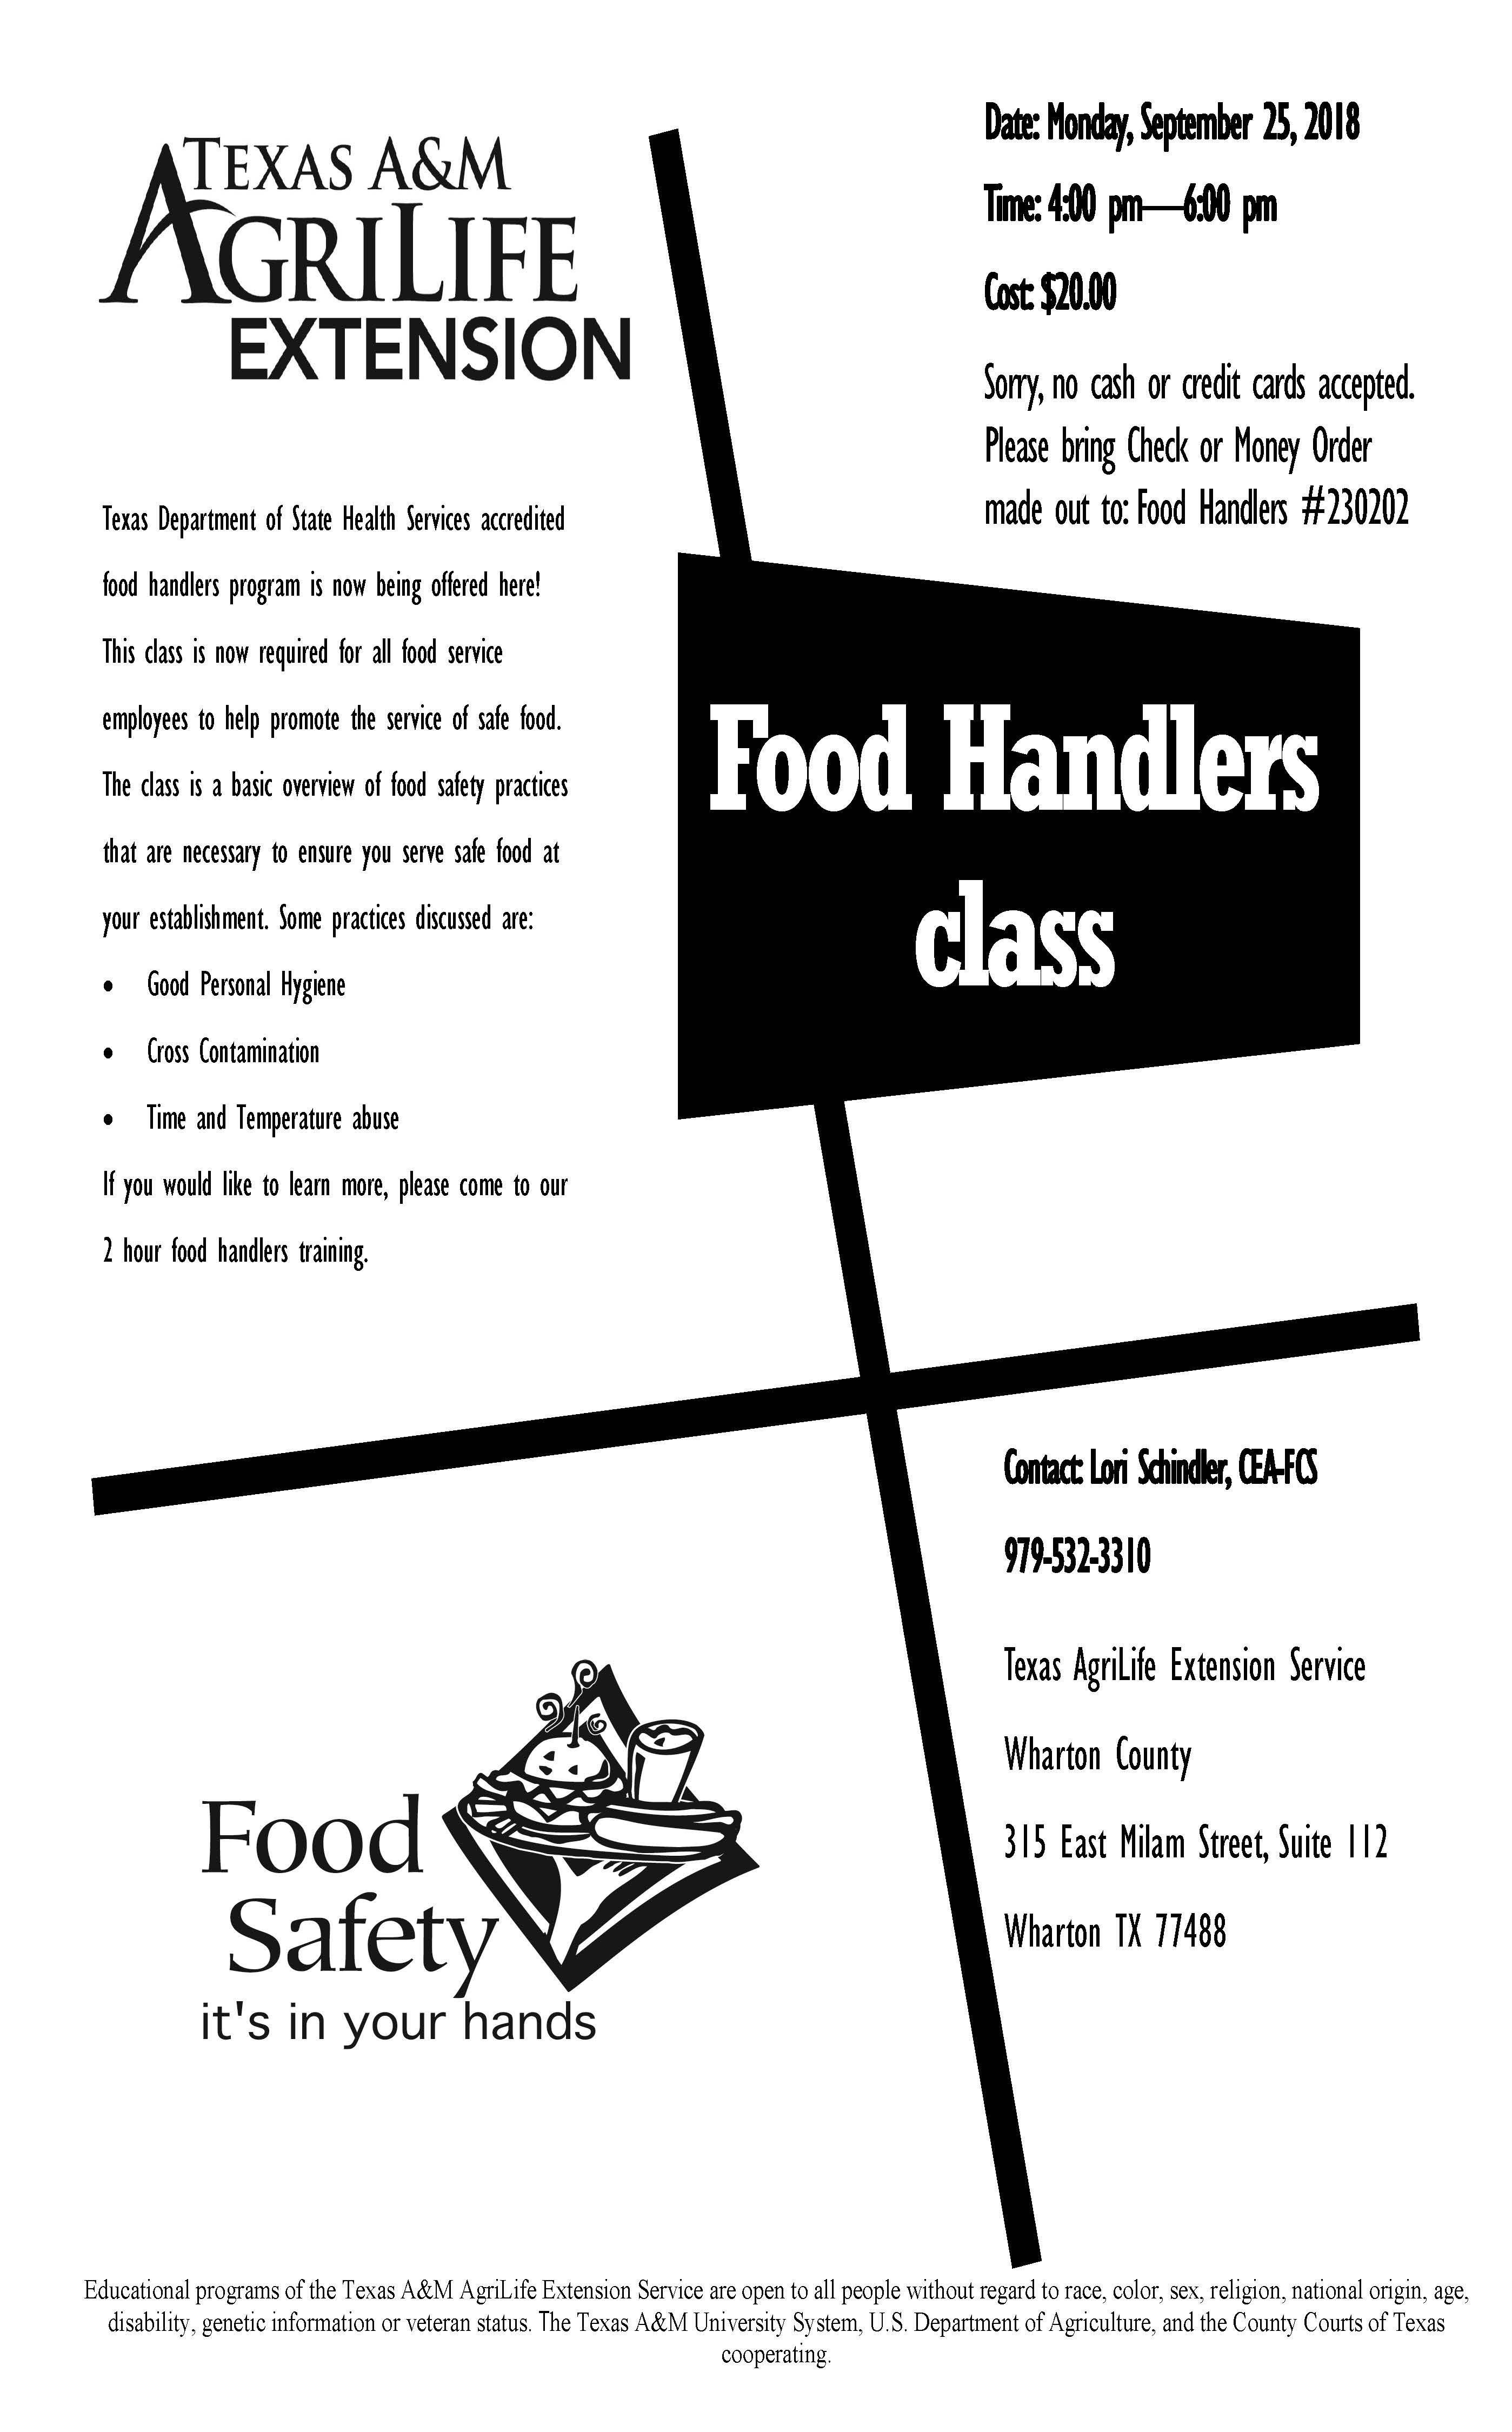 Food Handlers Class September 25